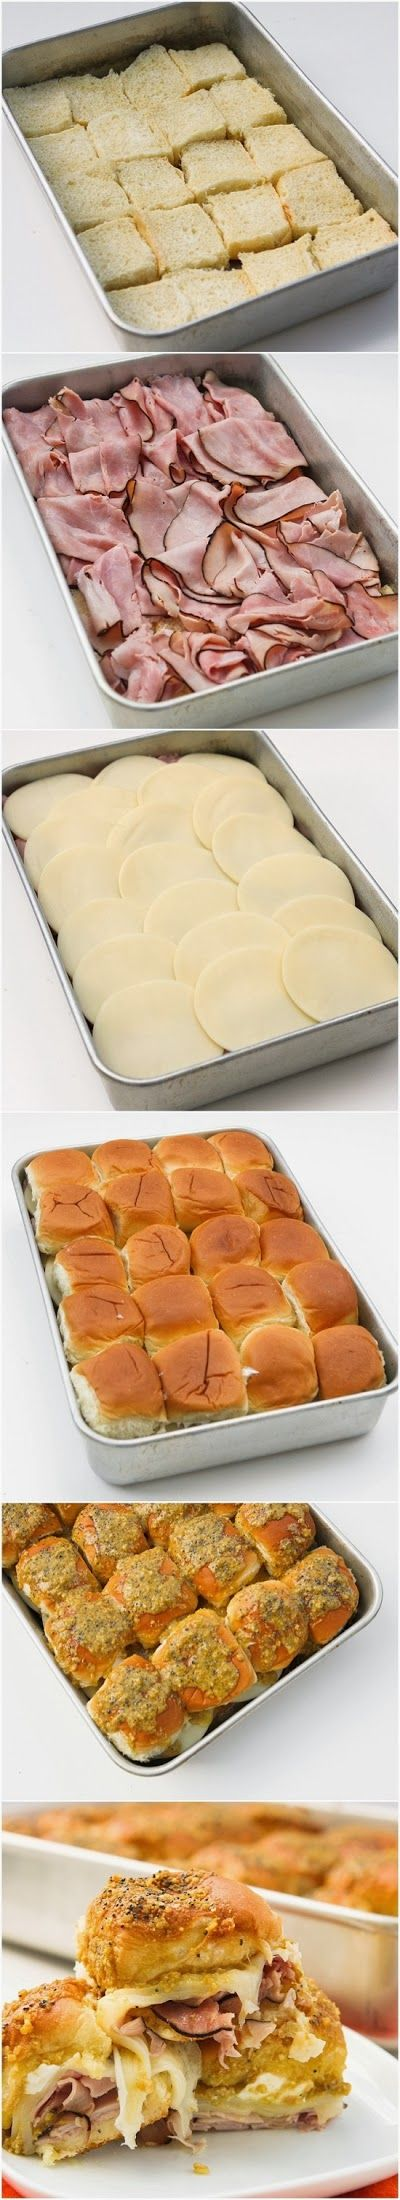 How To ham and cheese sandwiches - great for superbowl party - maybe do half ham half turkey?